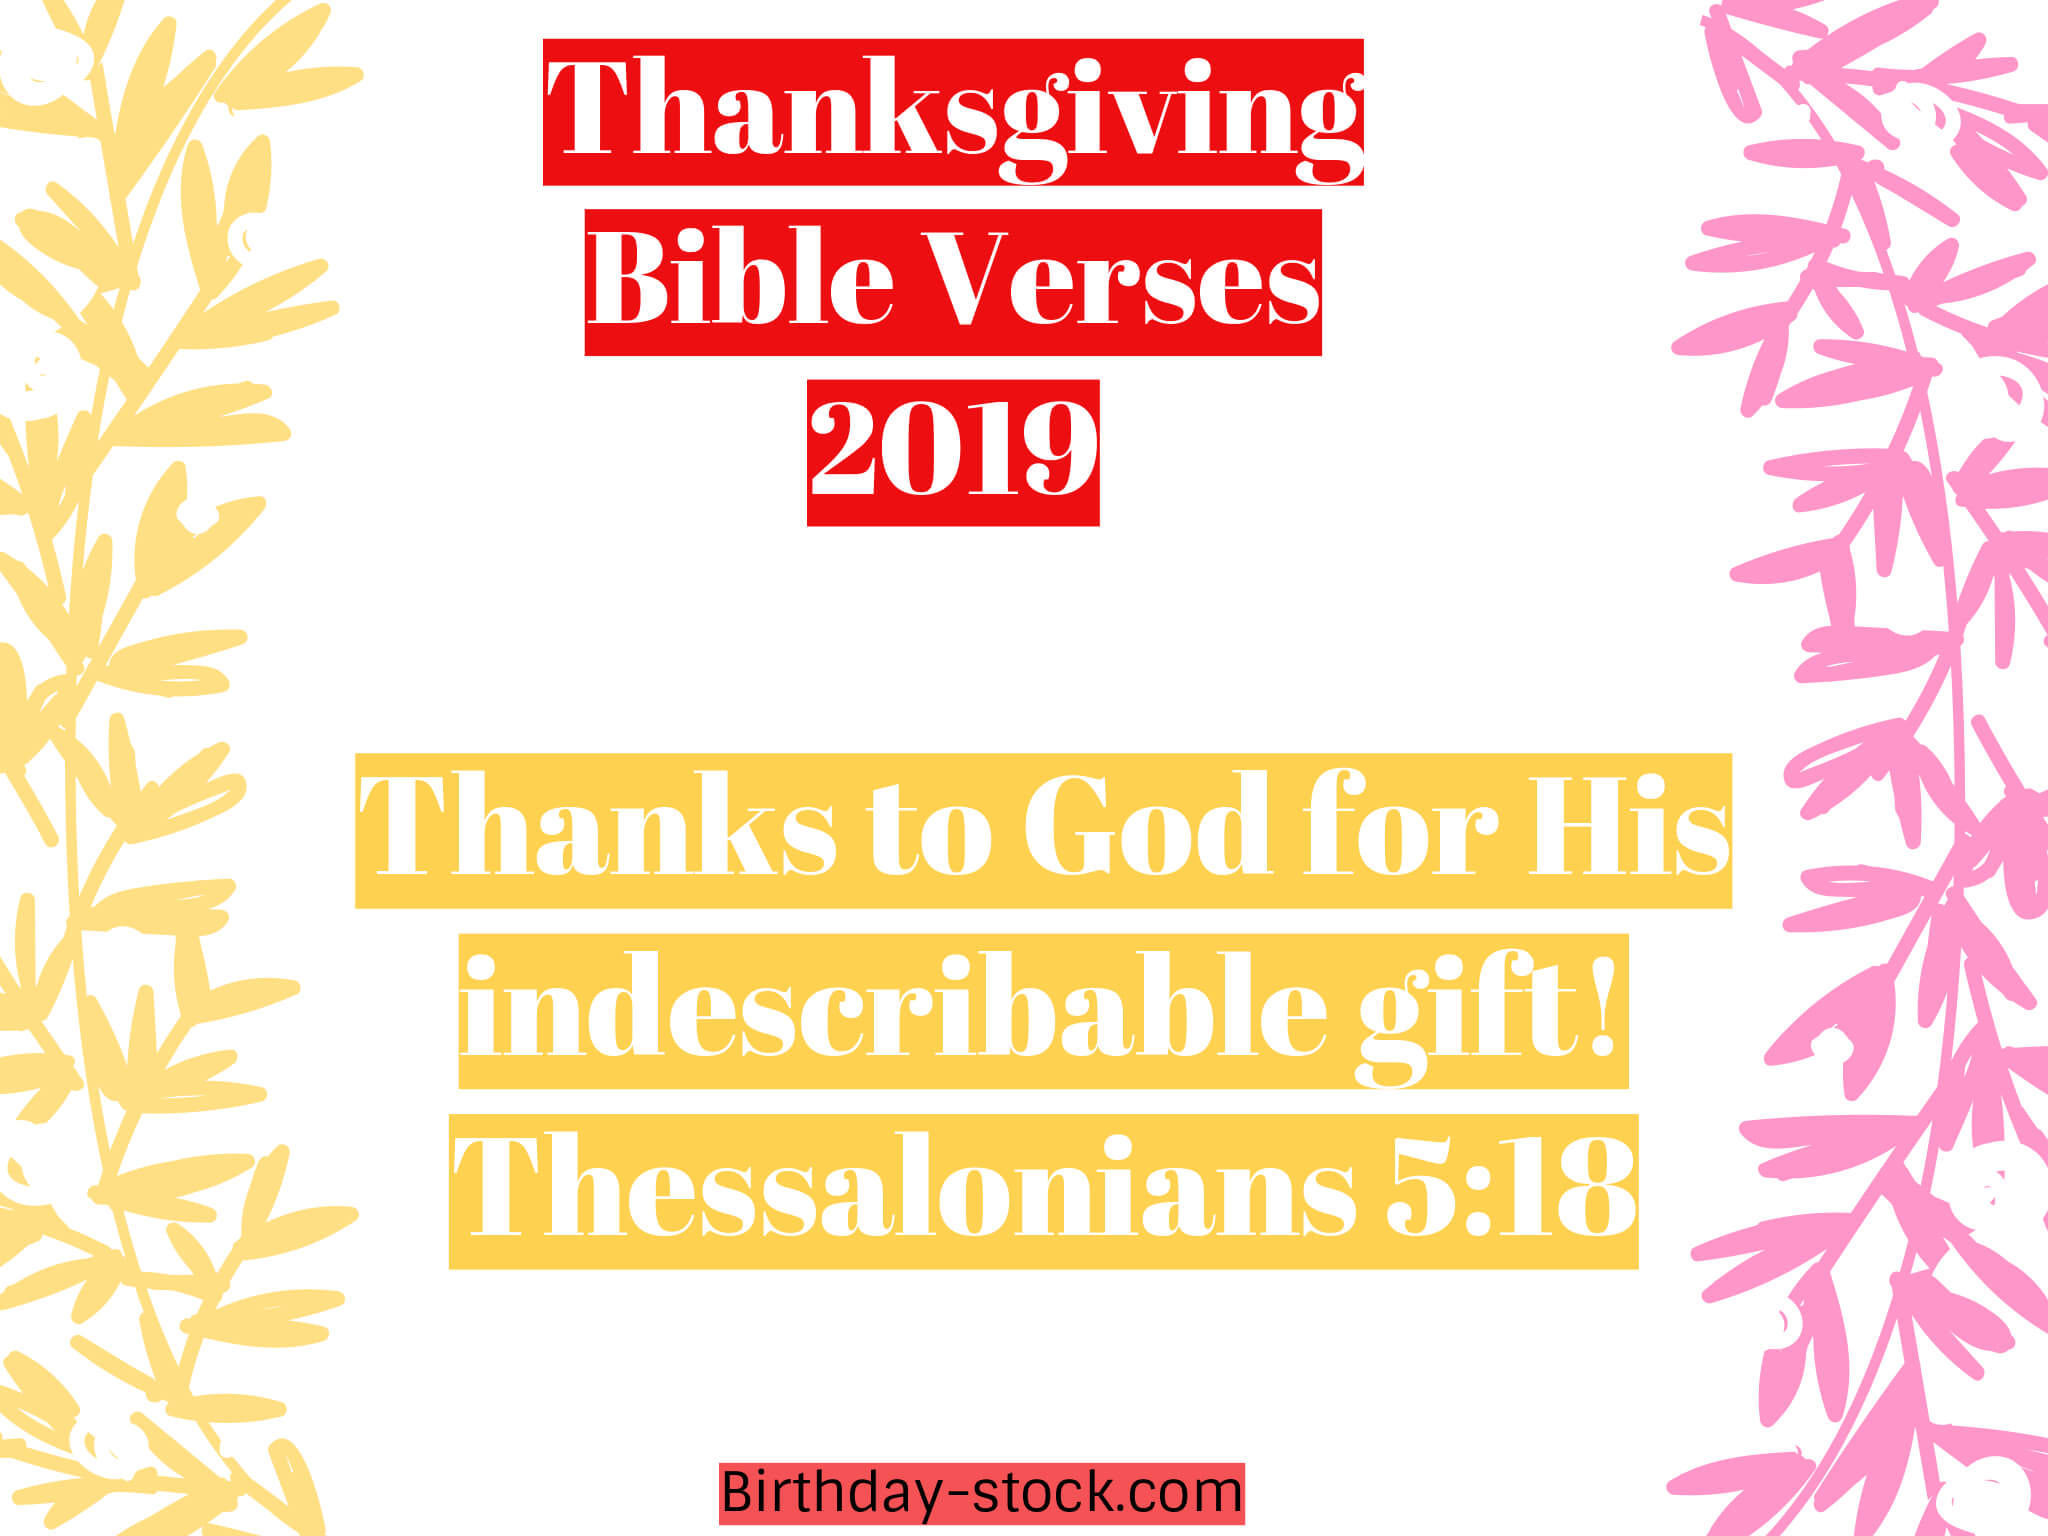 Happy Thanksgiving Bible Verses 2019 For Christian Friends